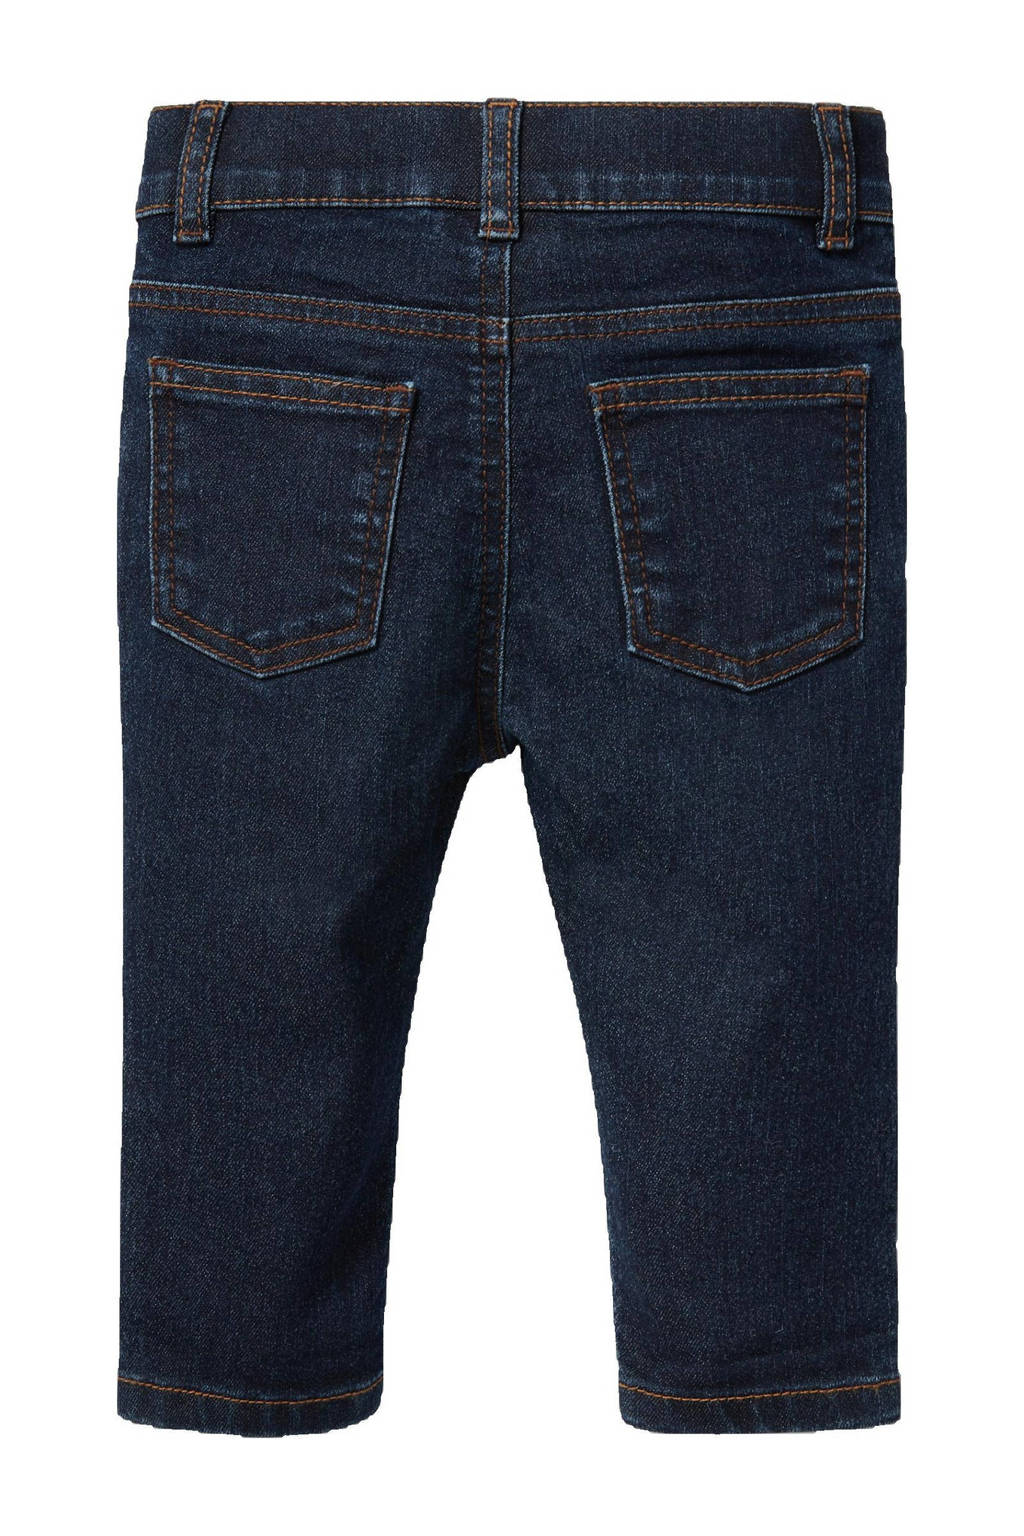 C&A Baby Club baby slim fit jeans donkerblauw, Donkerblauw